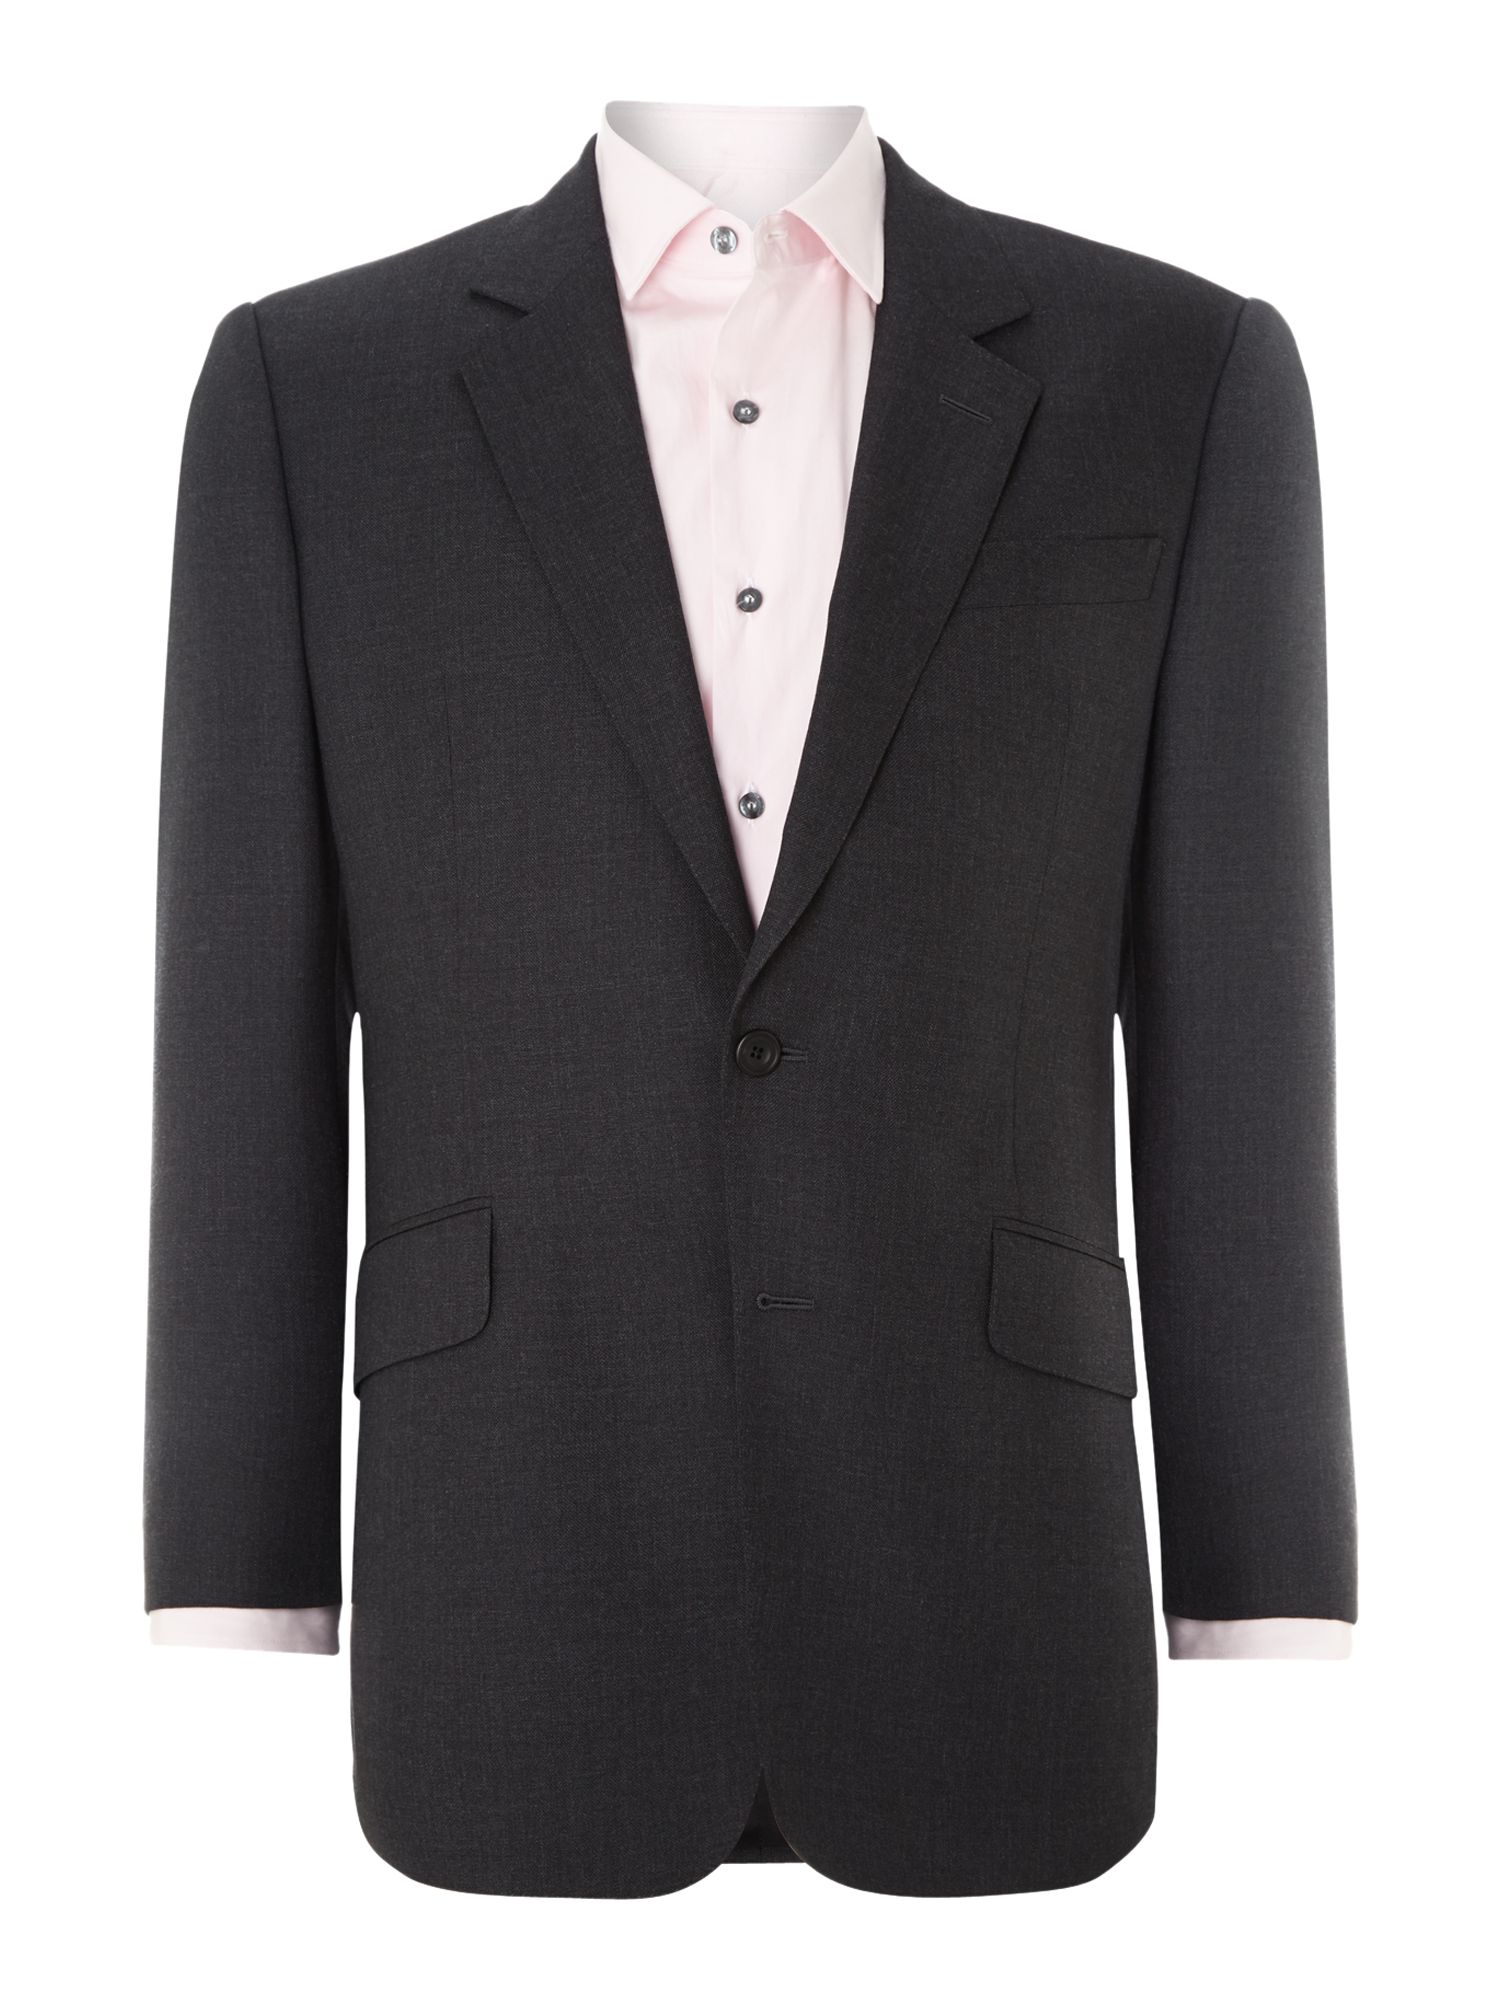 Plain hopsack suit jacket